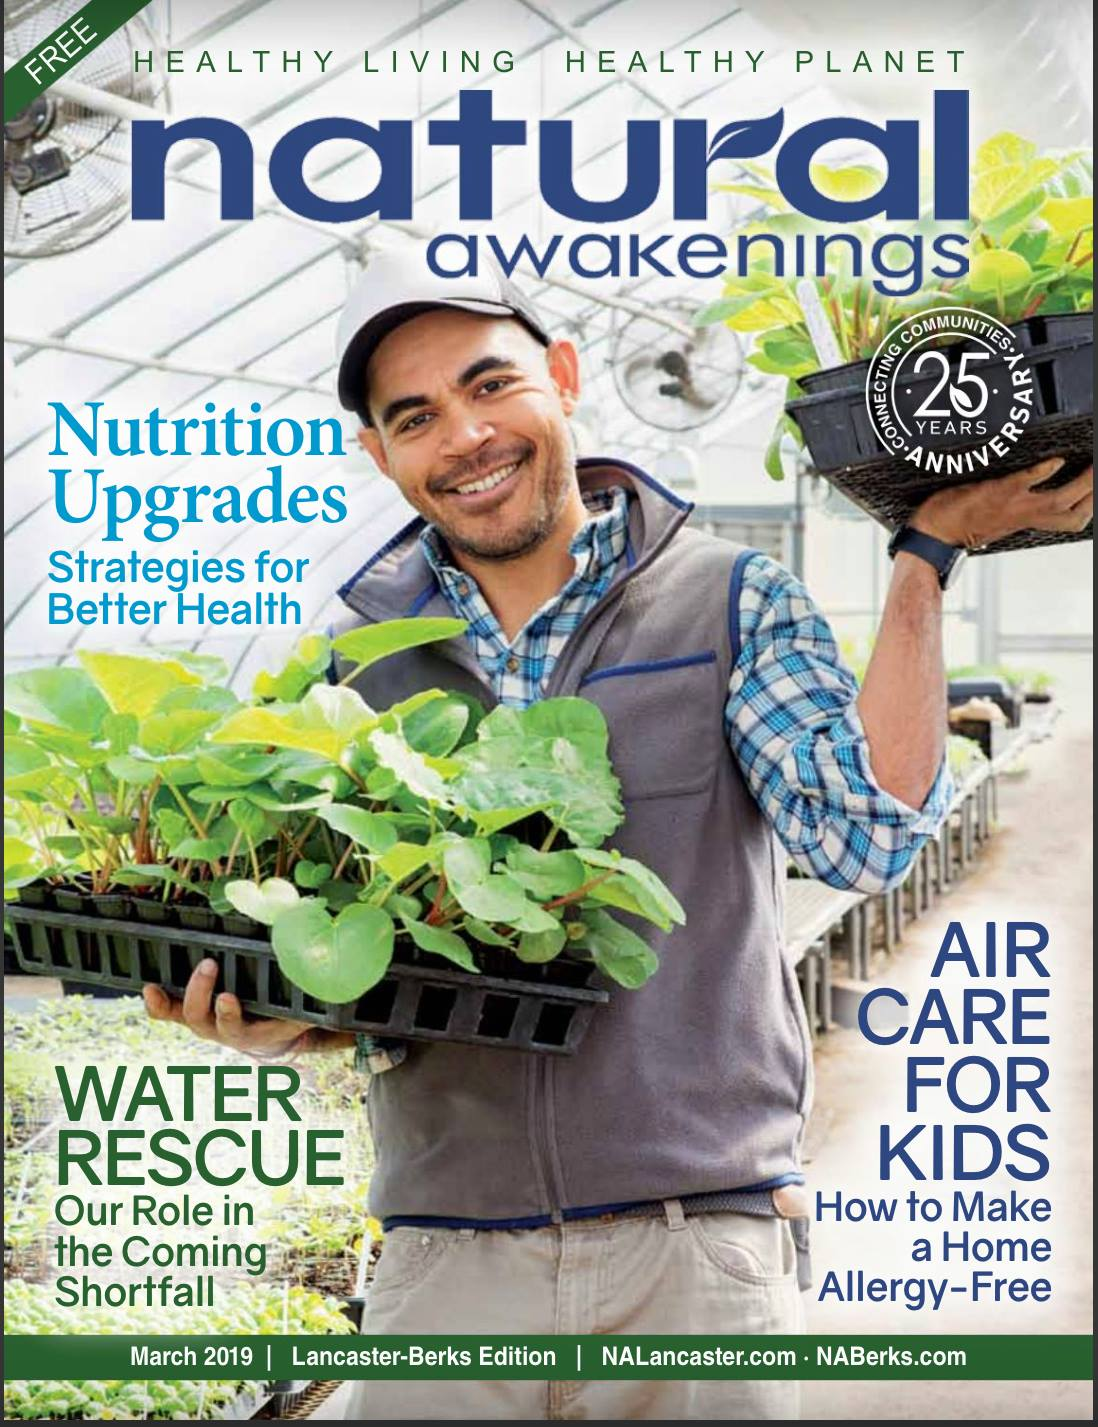 Jay Vilar was featured on the cover of Natural Awakenings magazine for his work helping clients health through nutritional therapy.